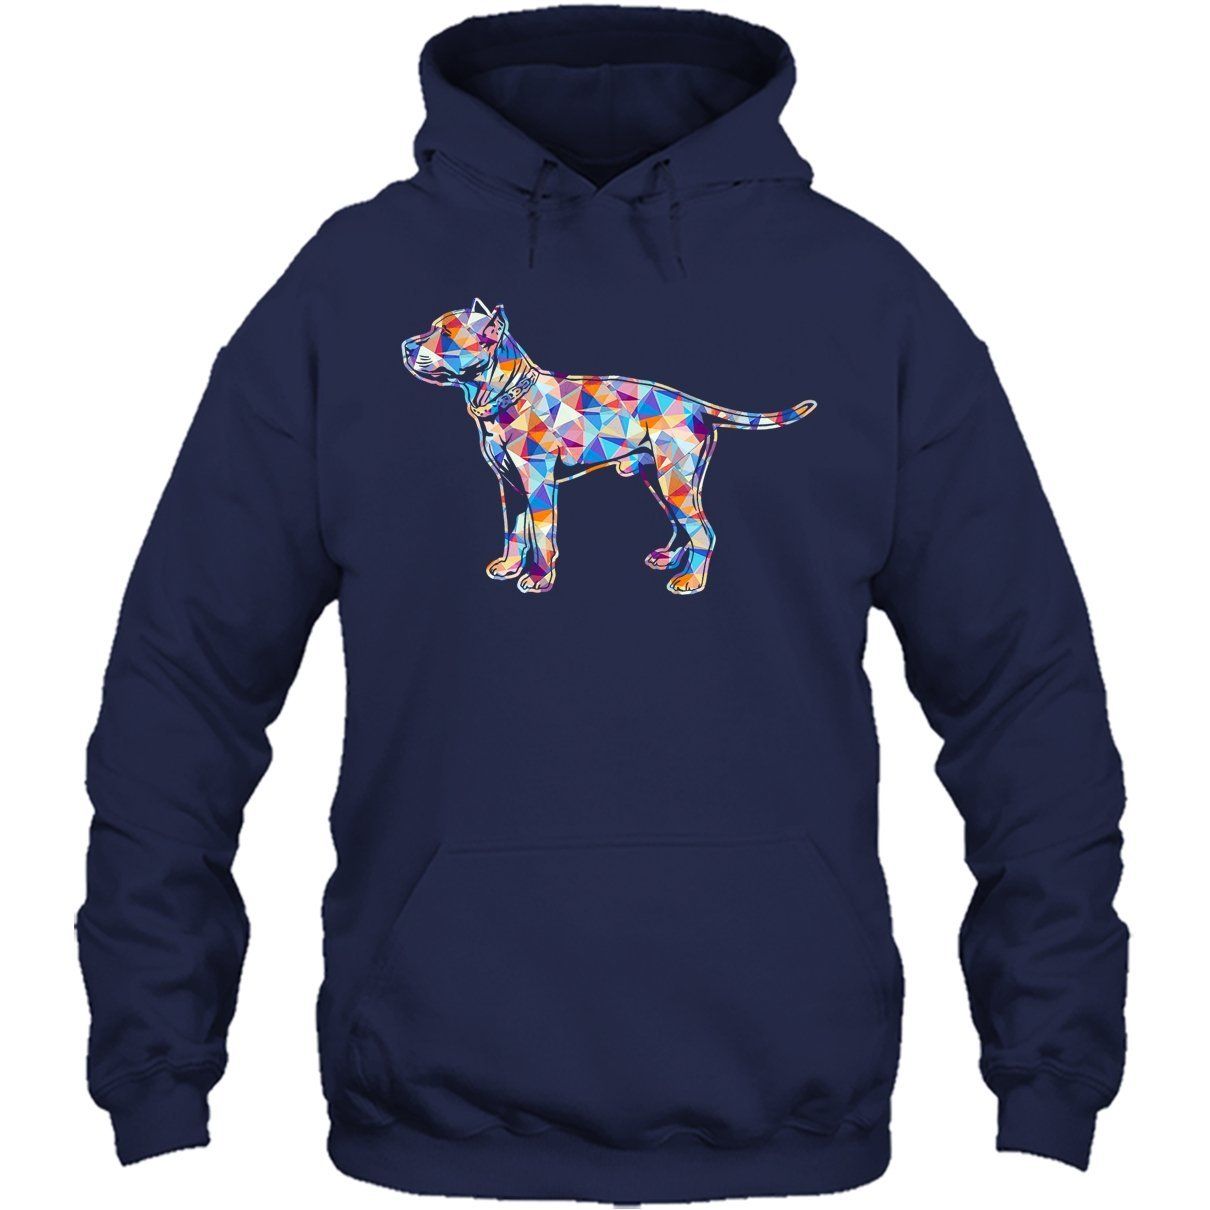 Staffordshire Bull Terrier Cool Tshirt Staffordshire Bull Terrier Colorful Tee Shirt Design for Men and Women